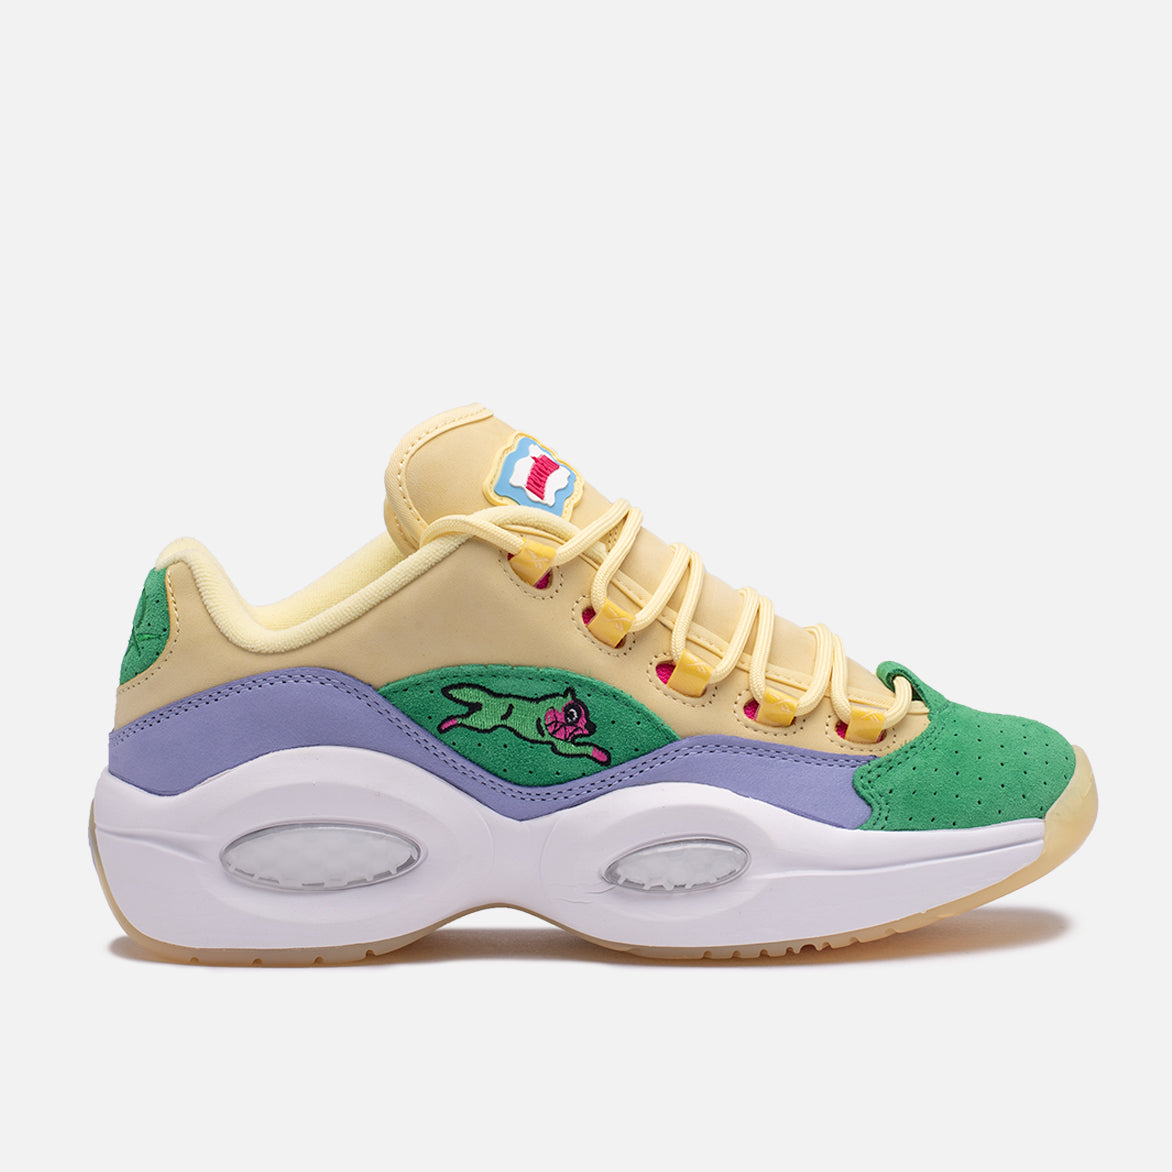 "BBC ICECREAM X REEBOK QUESTION LOW ""RUNNING DOG"" - GREEN"